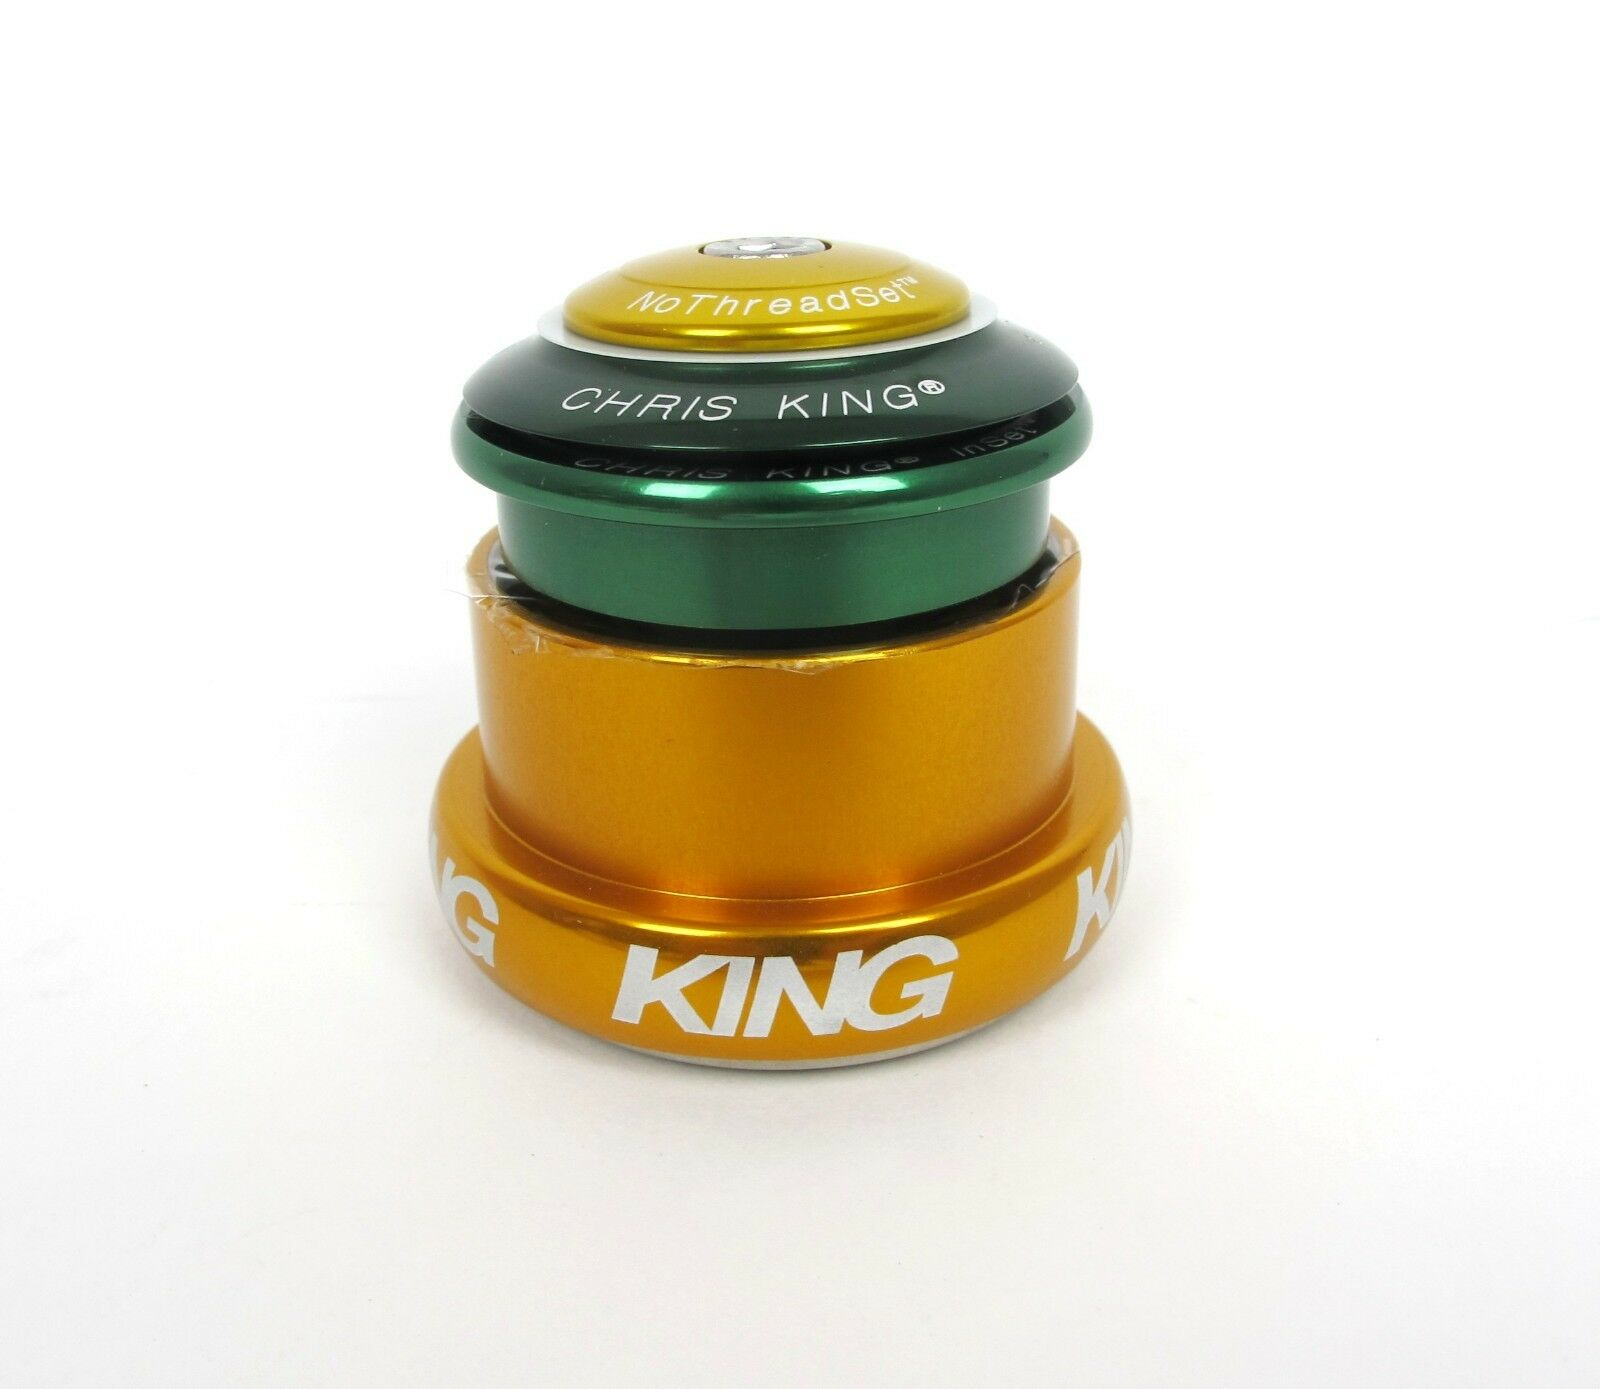 New Chris King Headset Inset I3 ZS44   EC49  Green & gold - 10 Year Warranty